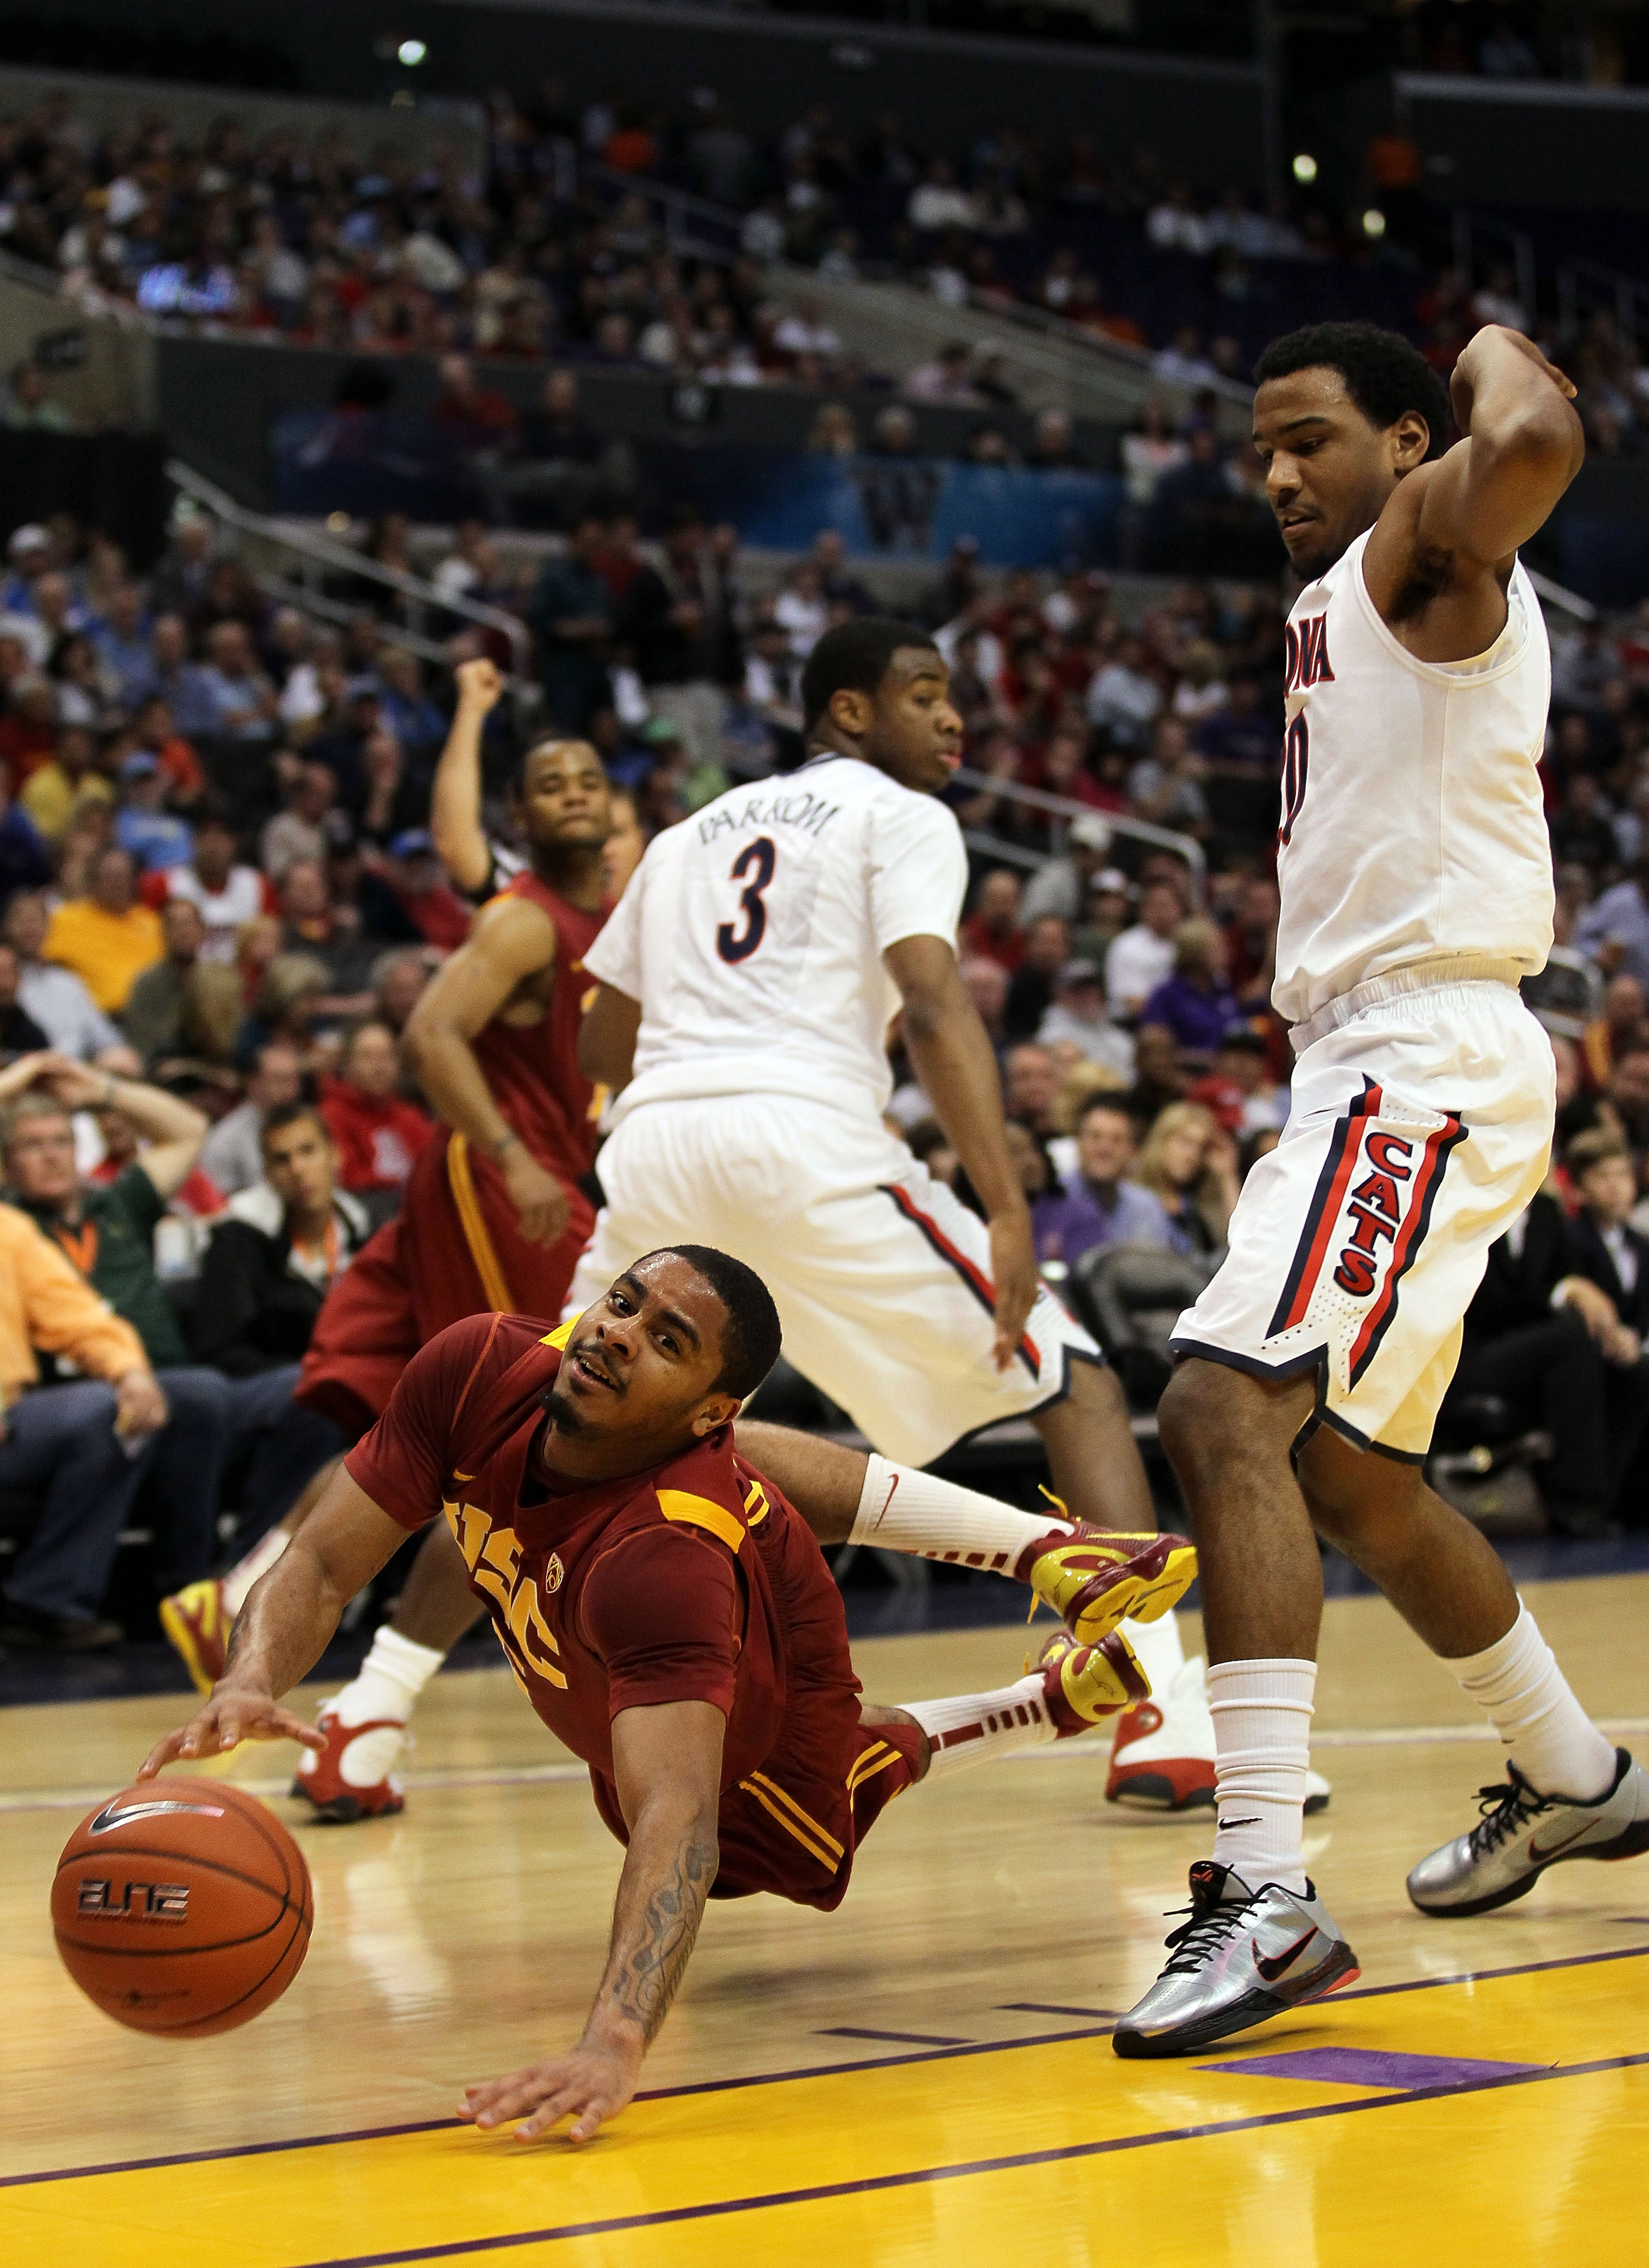 Jio Fontan battles for a loose ball. USC may have lost their battle for a bid.